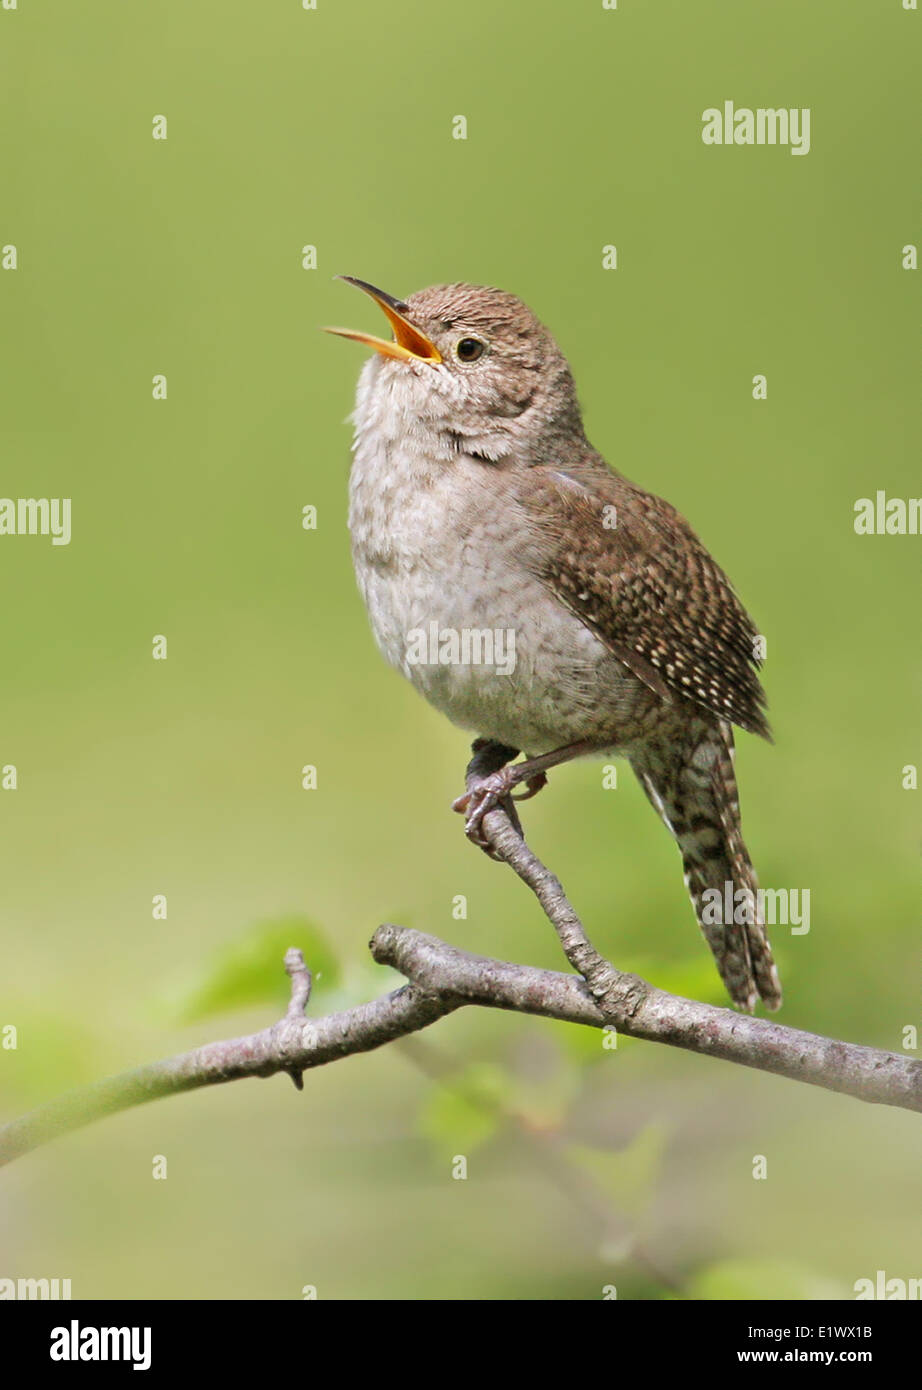 House Wren, Troglodytes aedon,  sings from a perch in Saskatoon, Saskatchewan, Canada - Stock Image